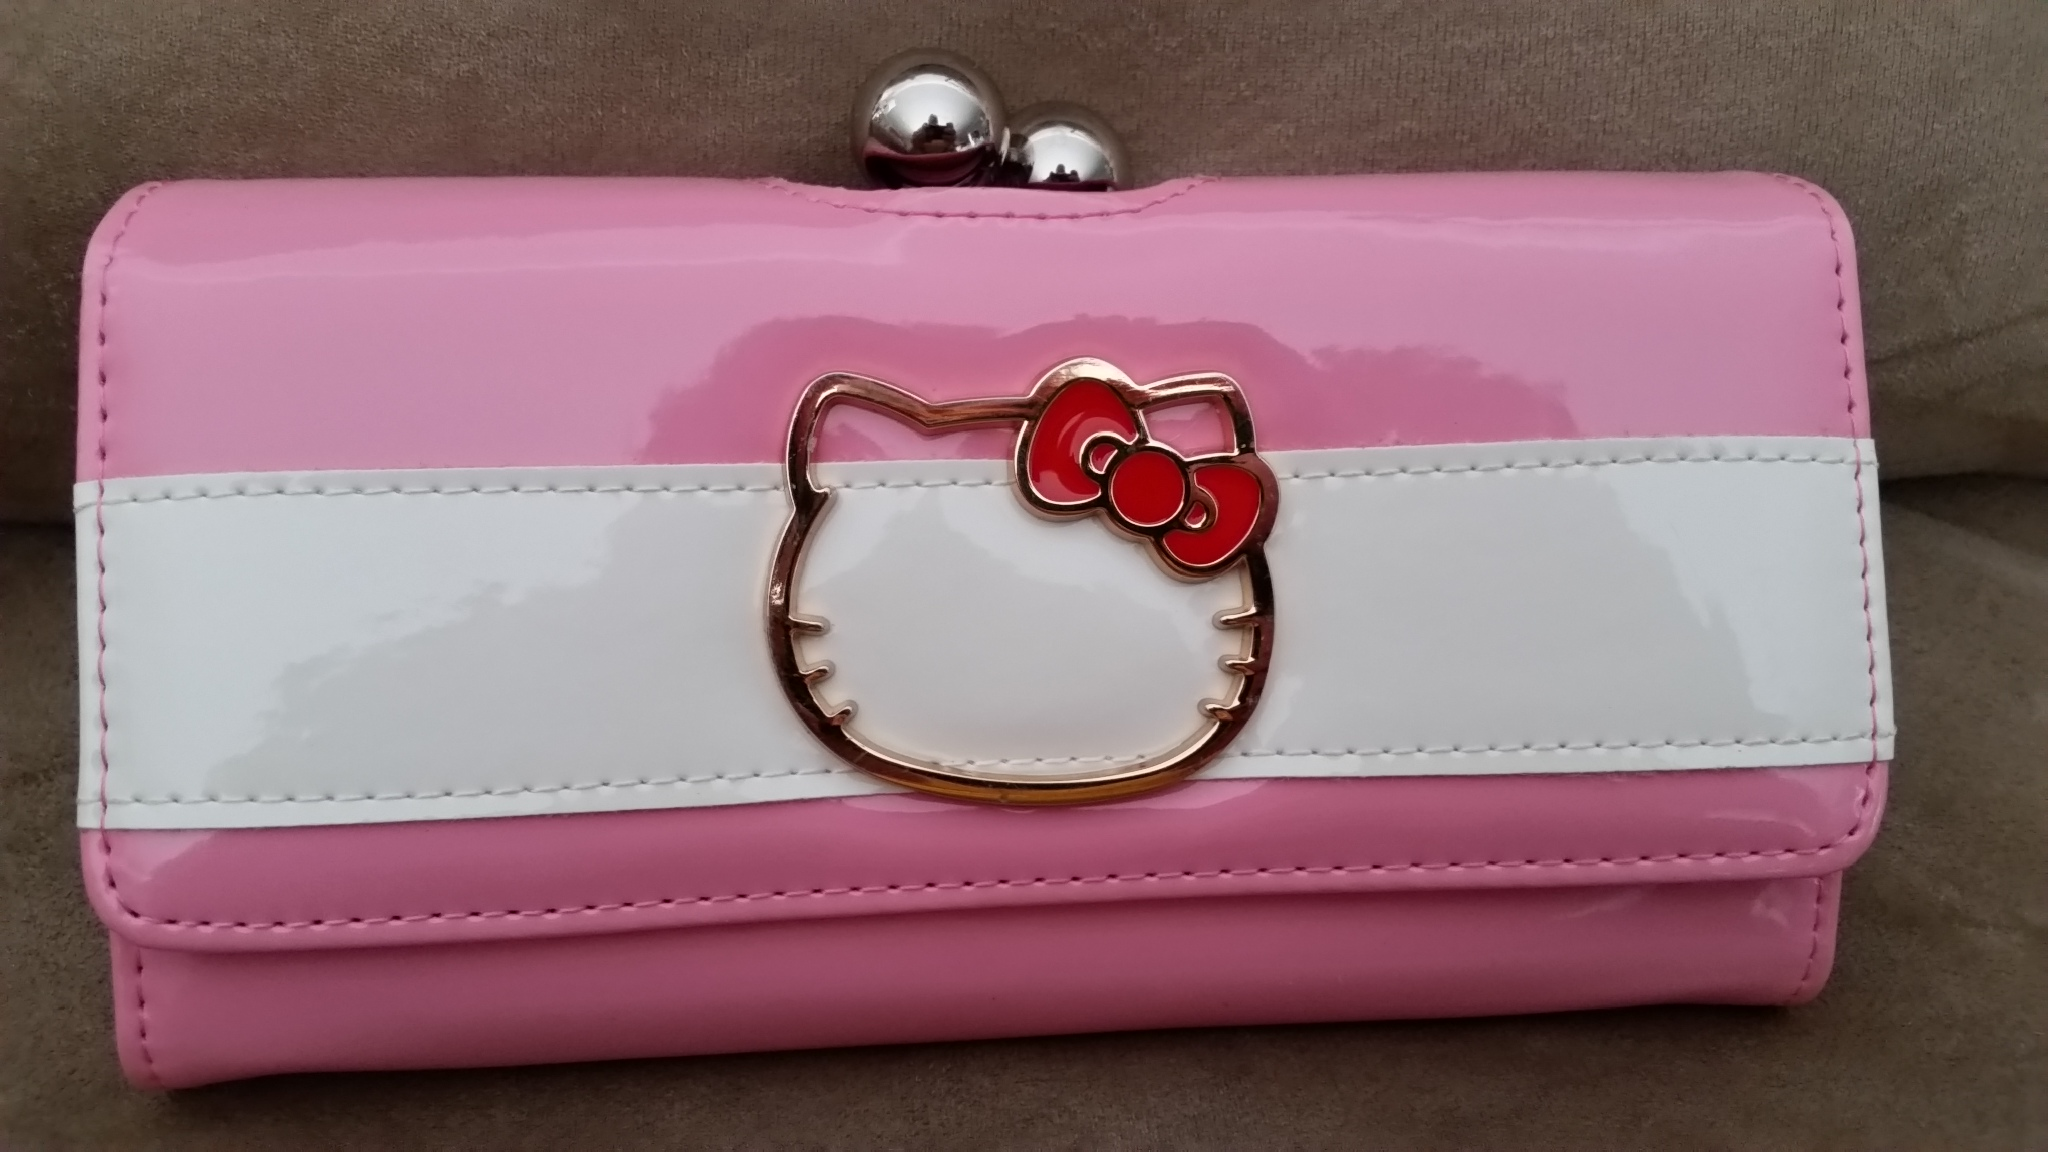 3ecfee5c5 Details about HELLO KITTY PINK PREMIUM CLASP WALLET Brand New 7